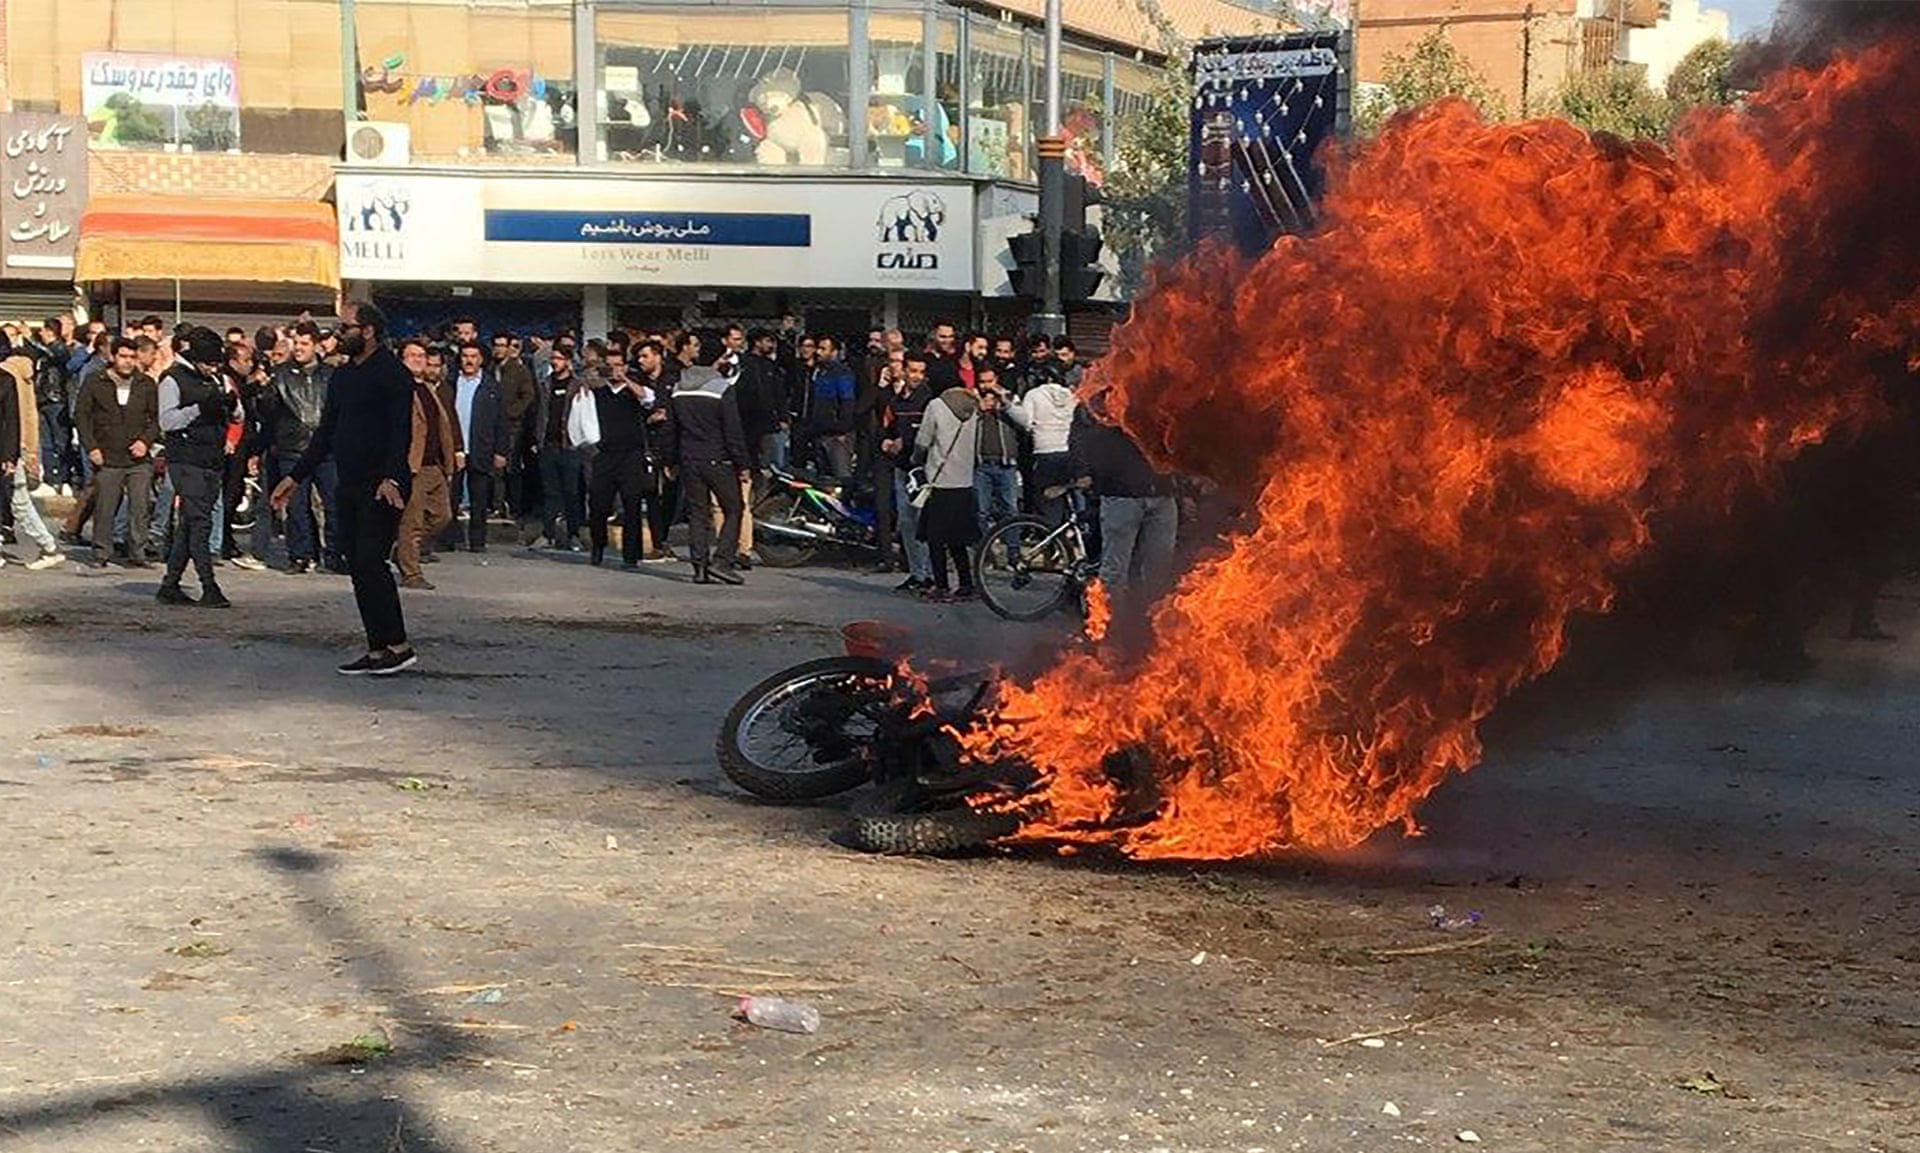 Iran unrest: Why protests against the regime always end the same way